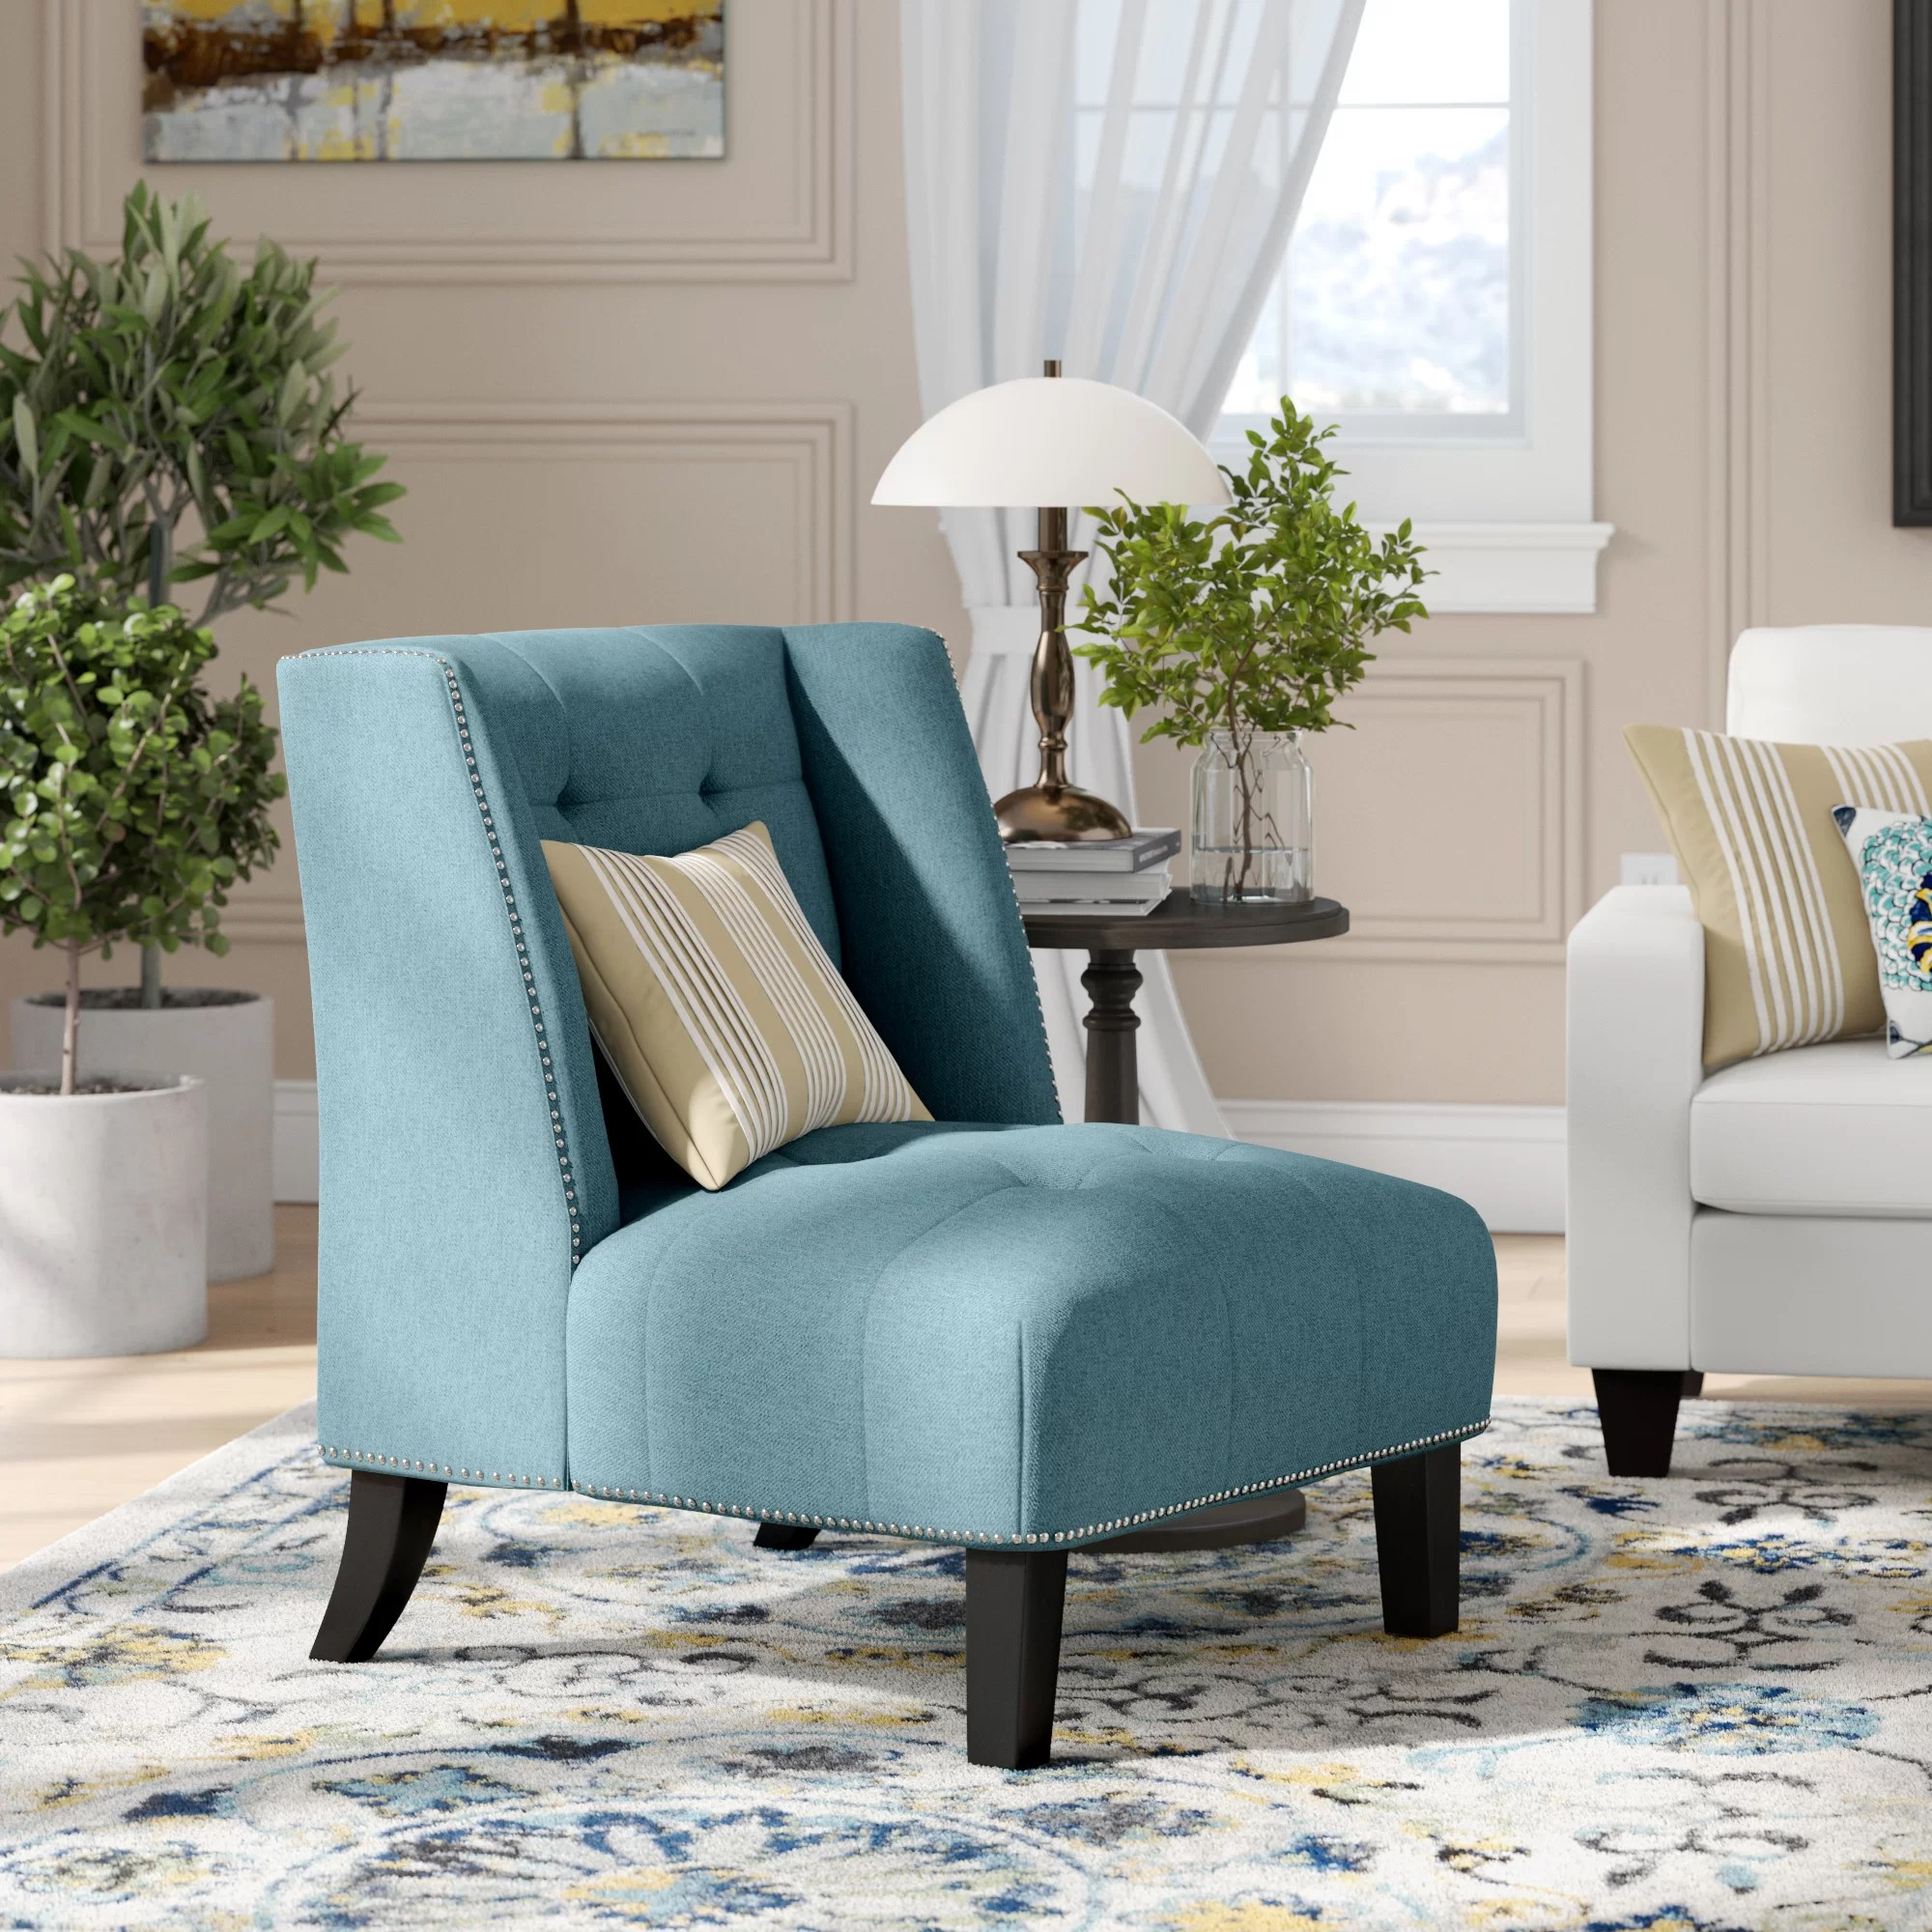 Teal Wingback Chair Friar Wingback Chair